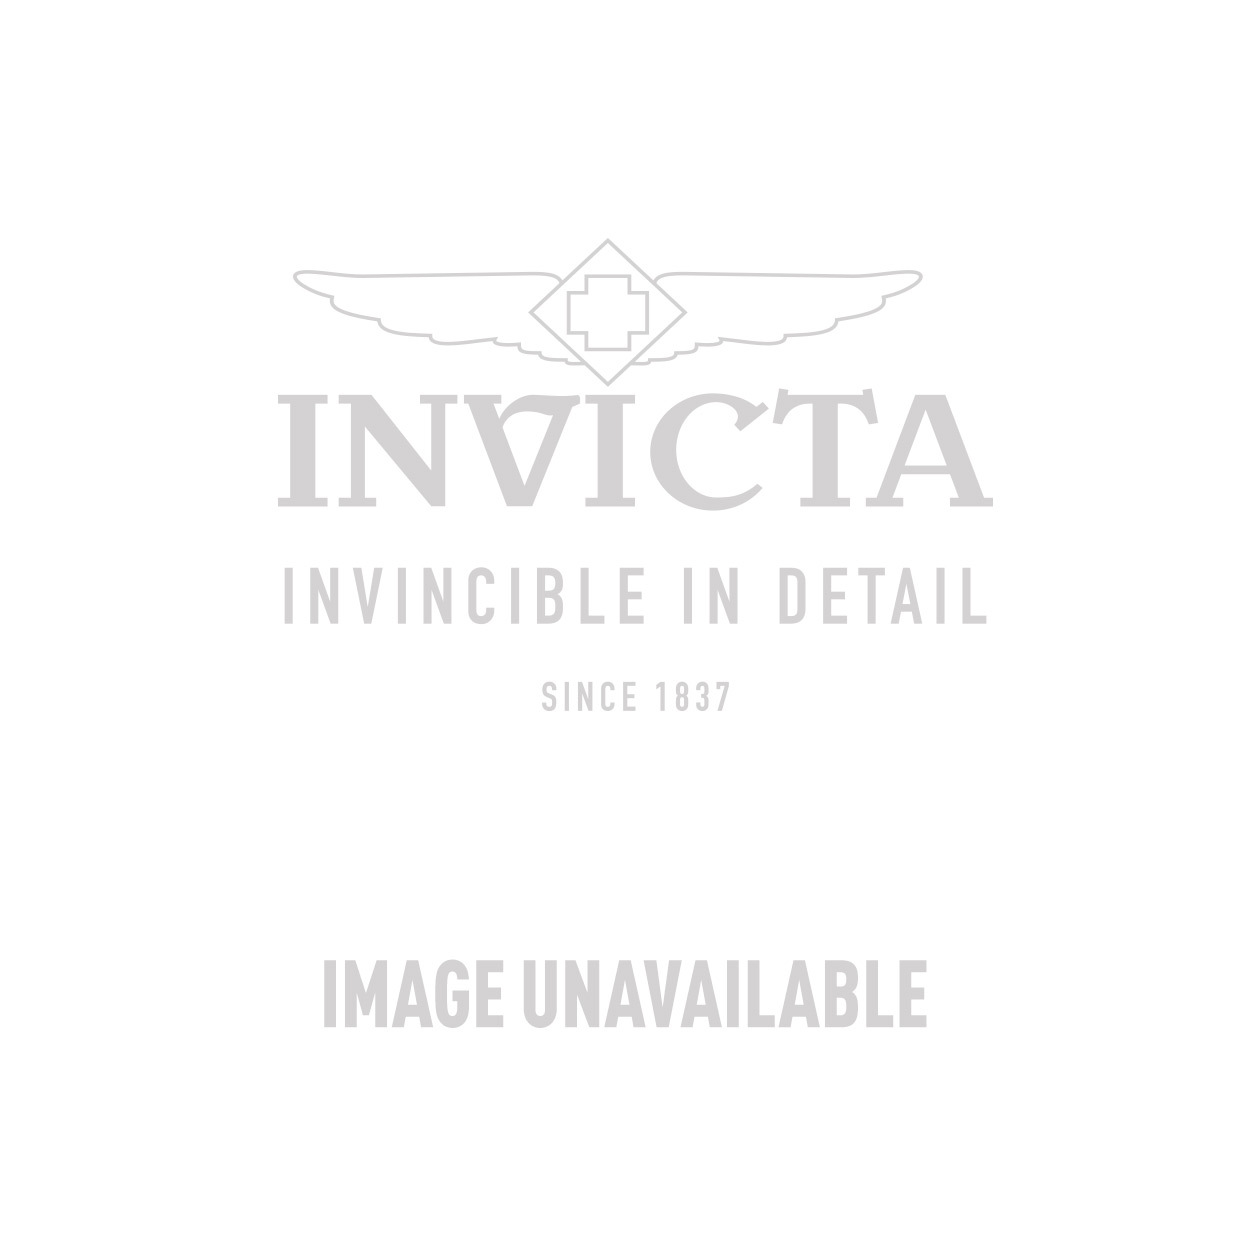 Invicta Speedway Quartz Watch - Rose Gold, Stainless Steel case with Steel, Rose Gold tone Stainless Steel band - Model 6932